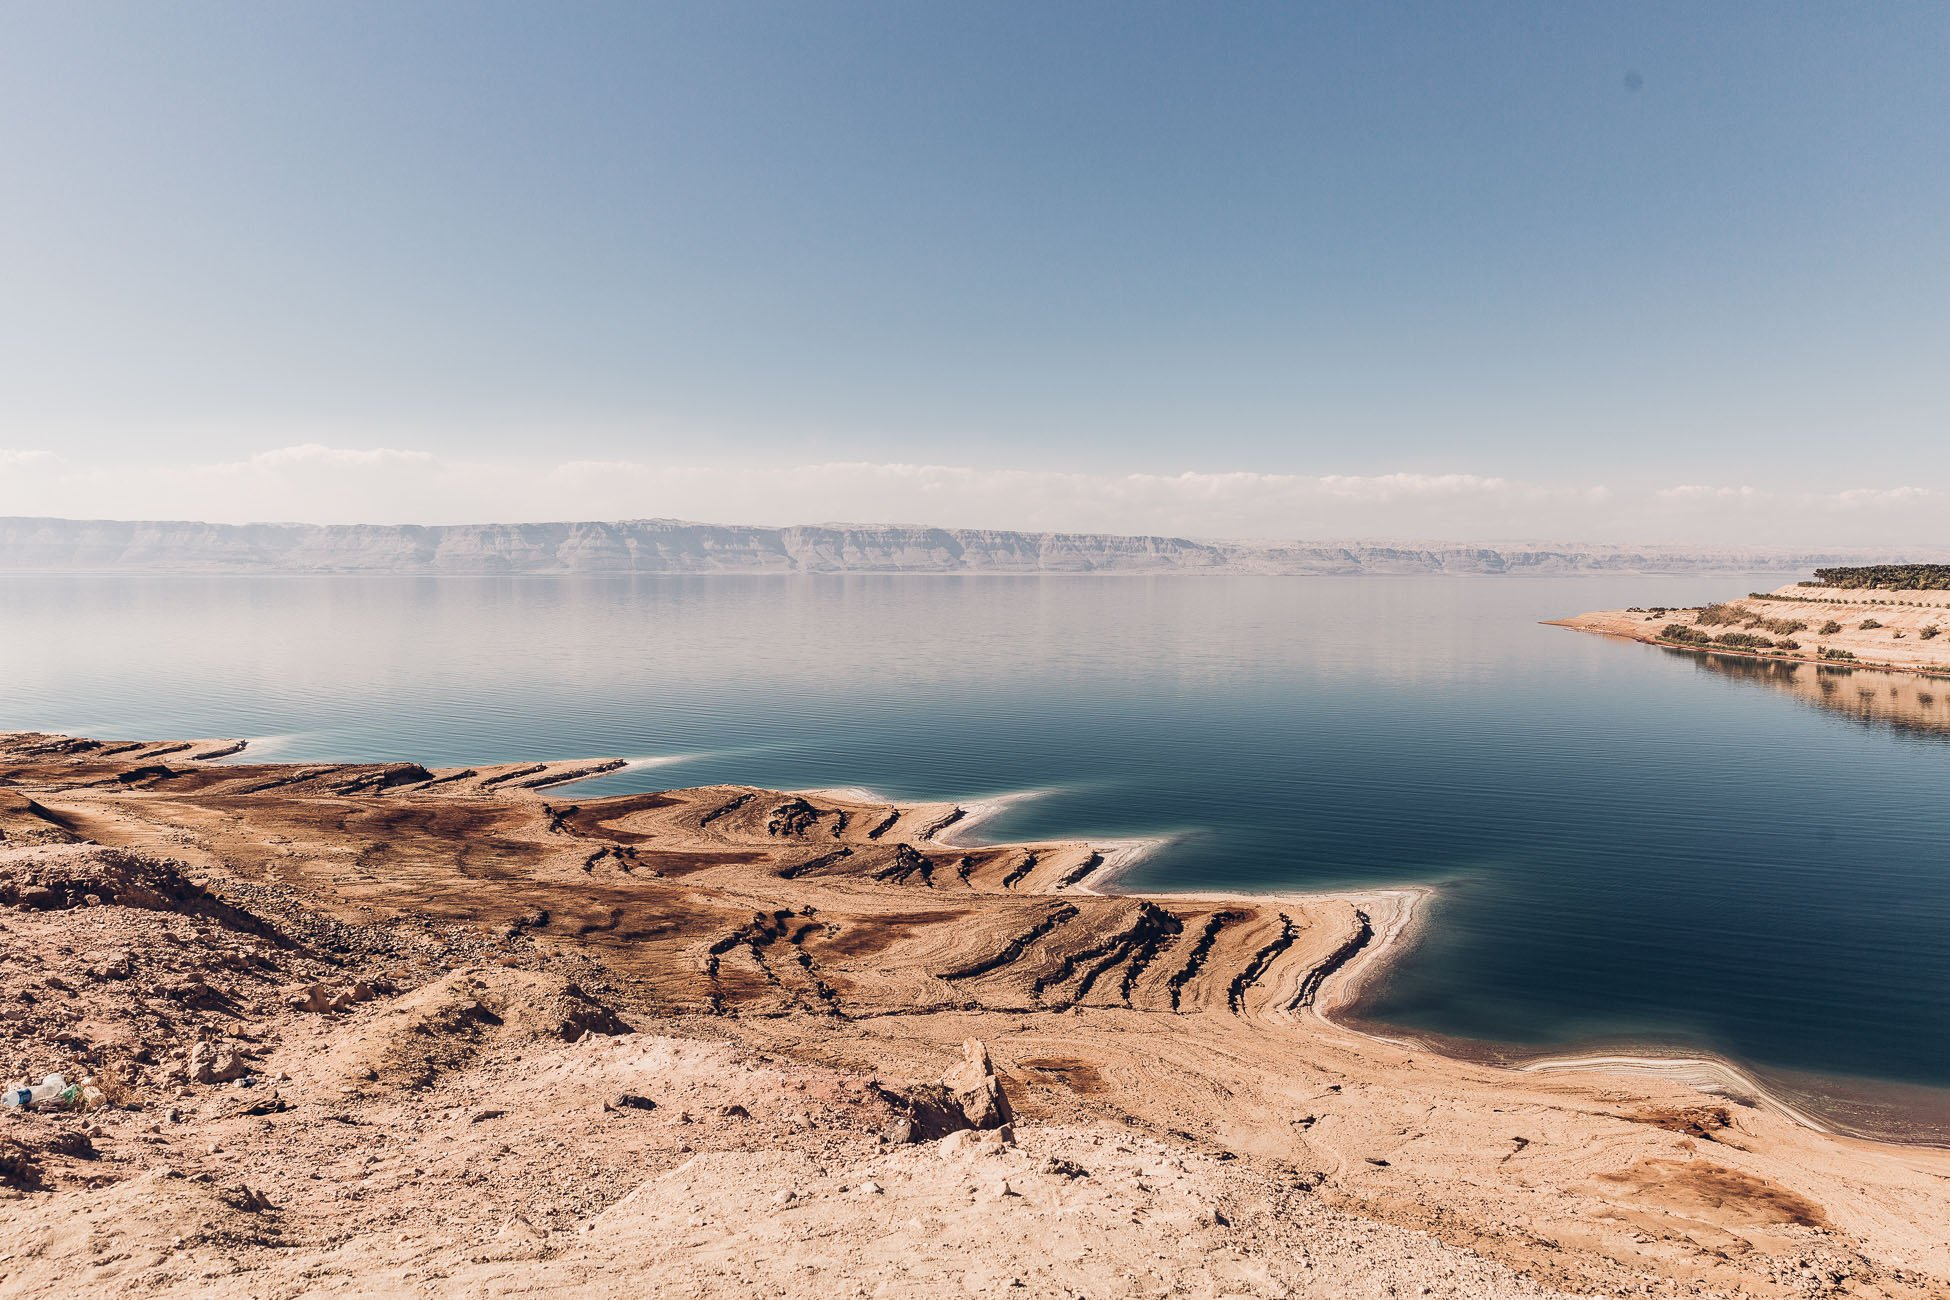 Dead Sea shore in Jordan